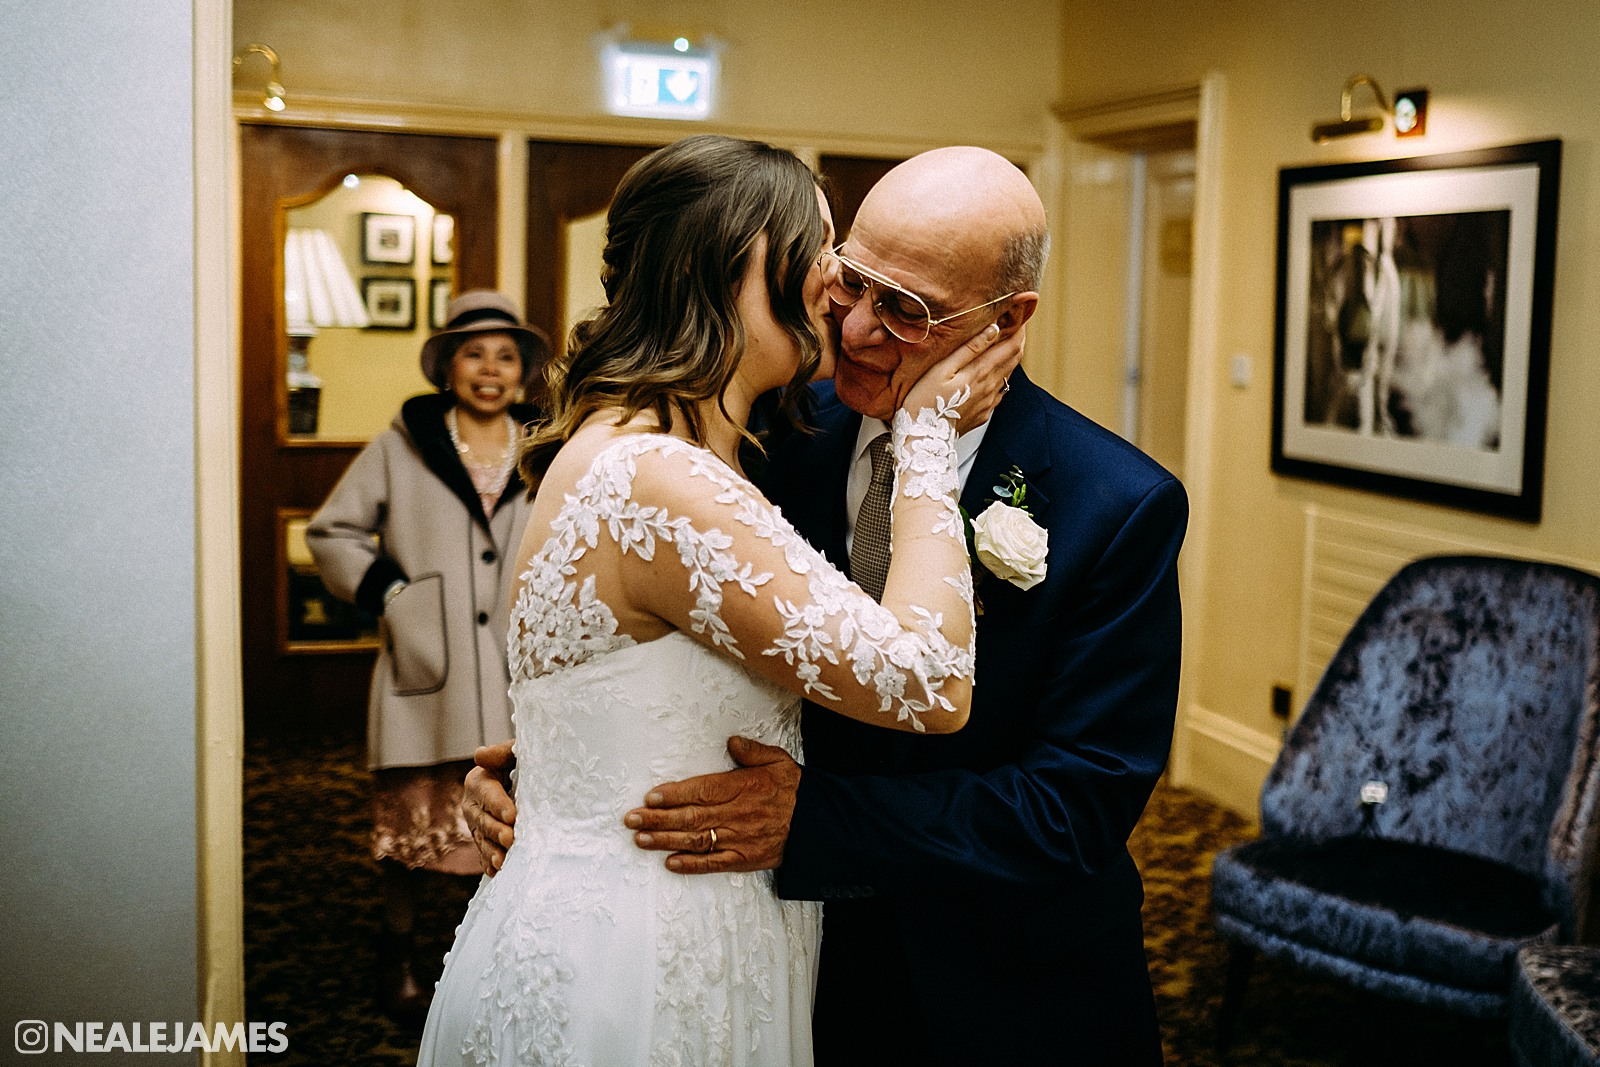 A colour picture of a bride embracing her father